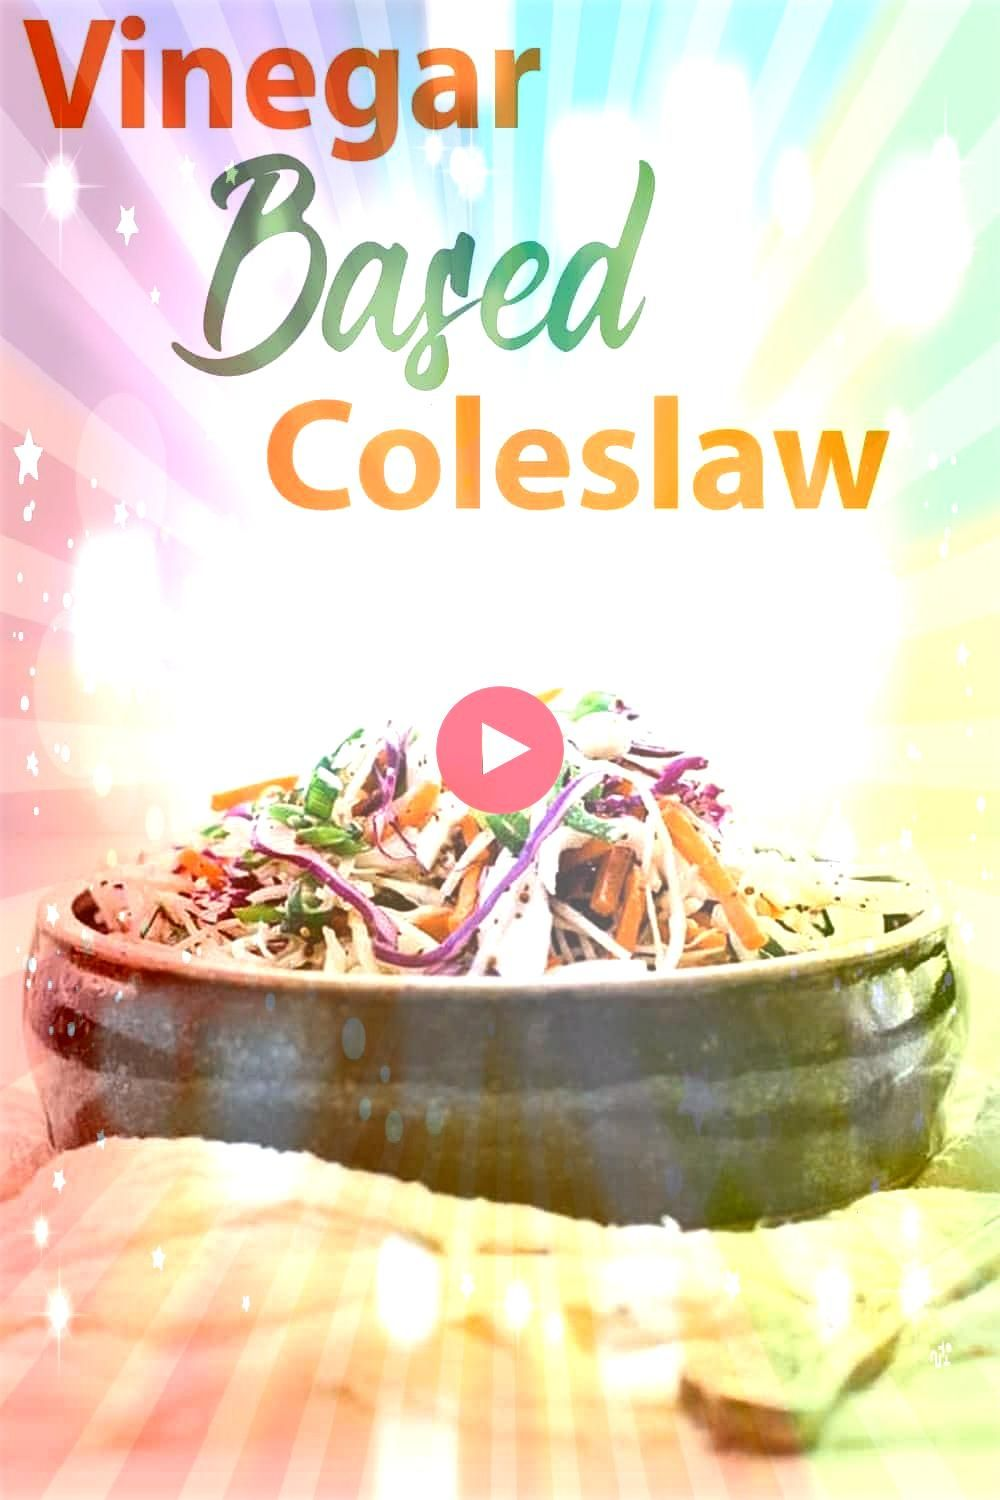 Based Coleslaw Recipe  this delicious coleslaw is loaded with green cabbage red cabbage carrots and green onions in a tasty sweet cider vinaigretteVinegar Based Coleslaw...